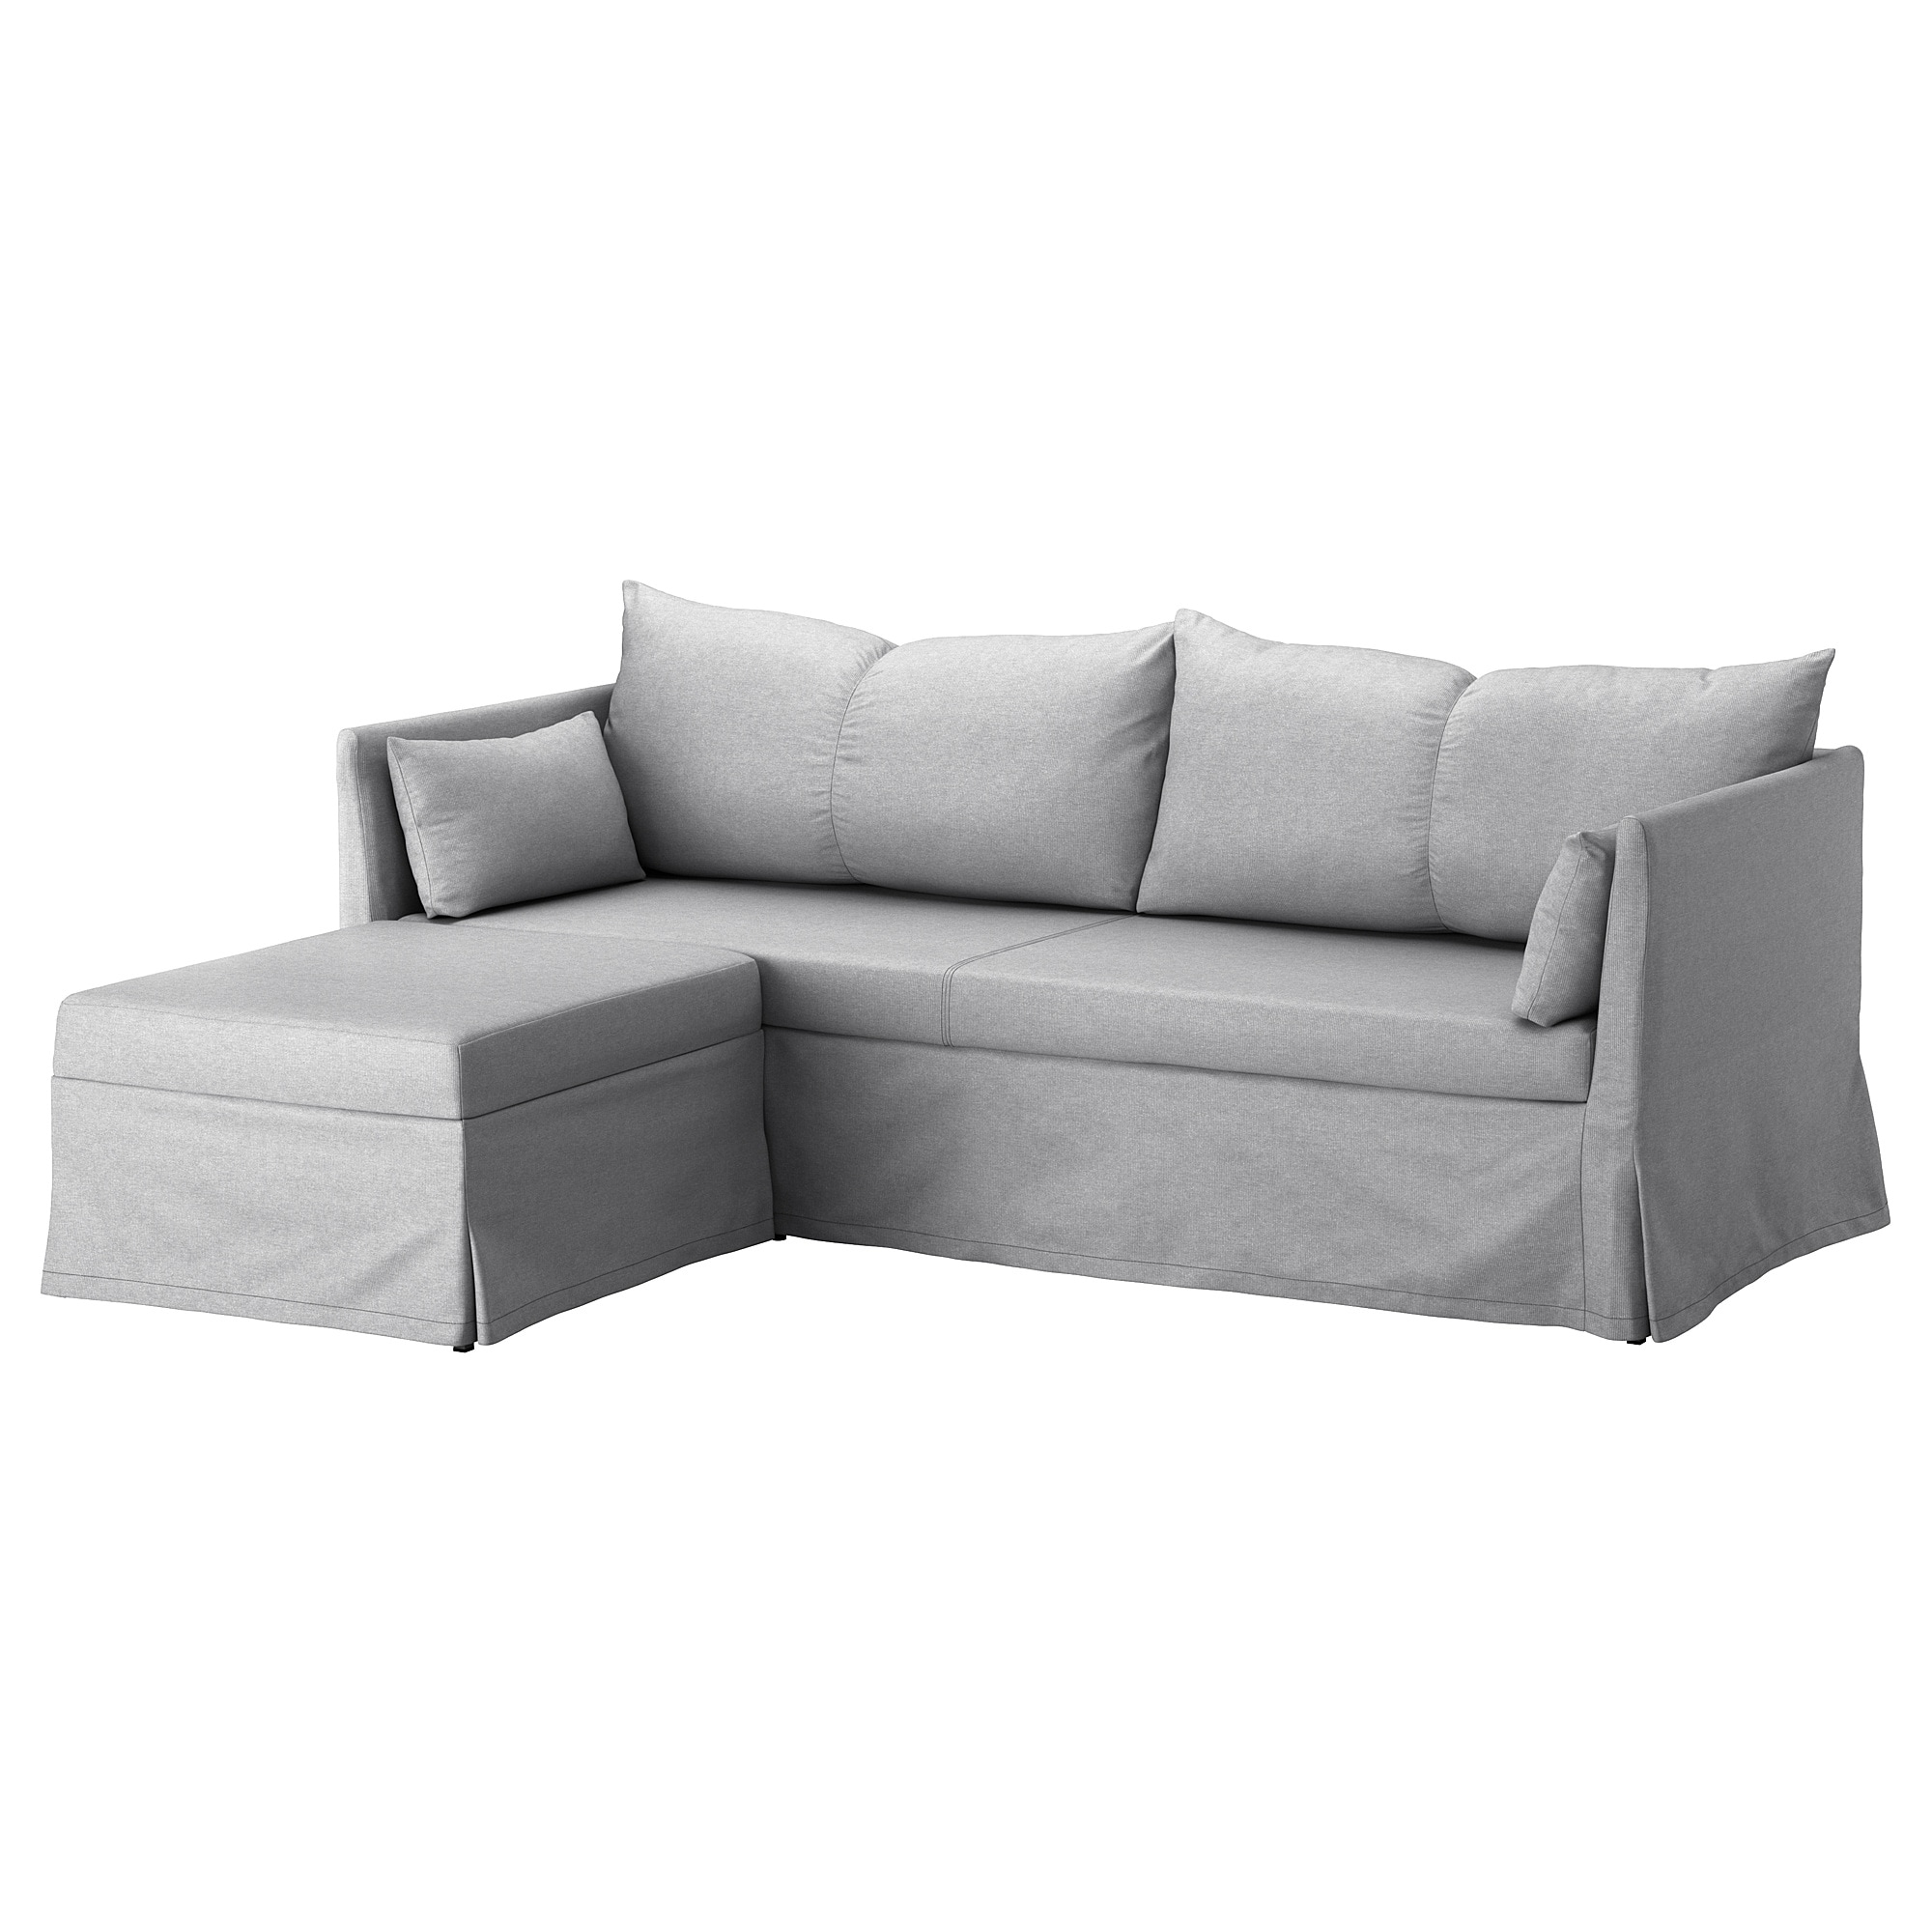 Sofa Cushions That Don't Go Flat Sandbacken Sleeper Sectional 3 Seat Lofallet Beige